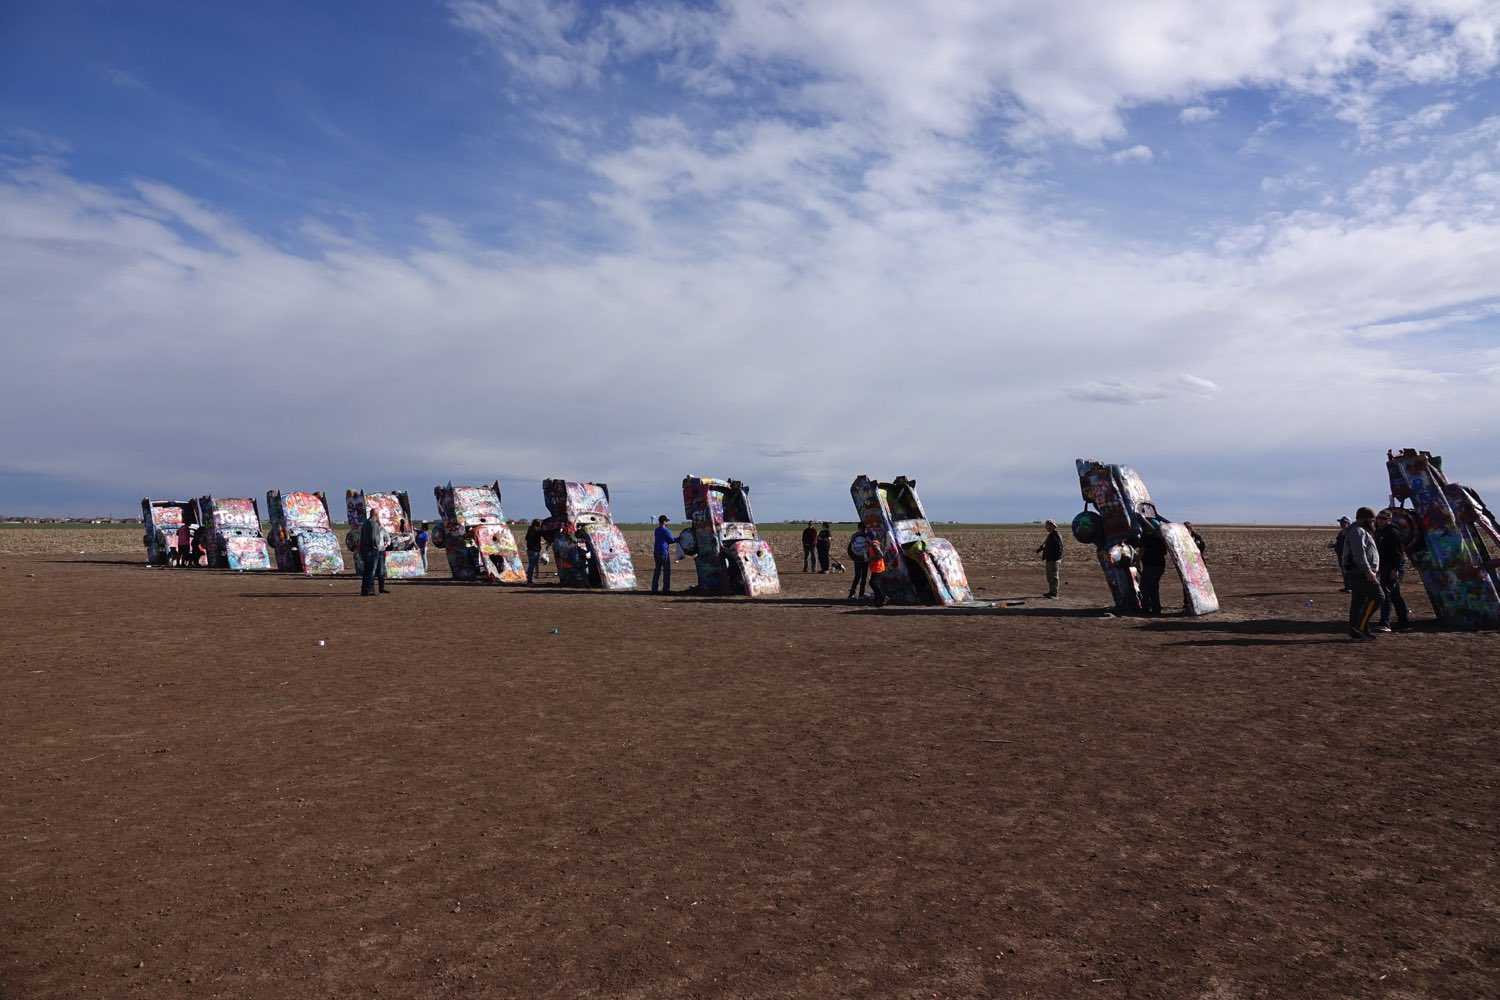 Cadillac Ranch, just West of Amarillo, Texas